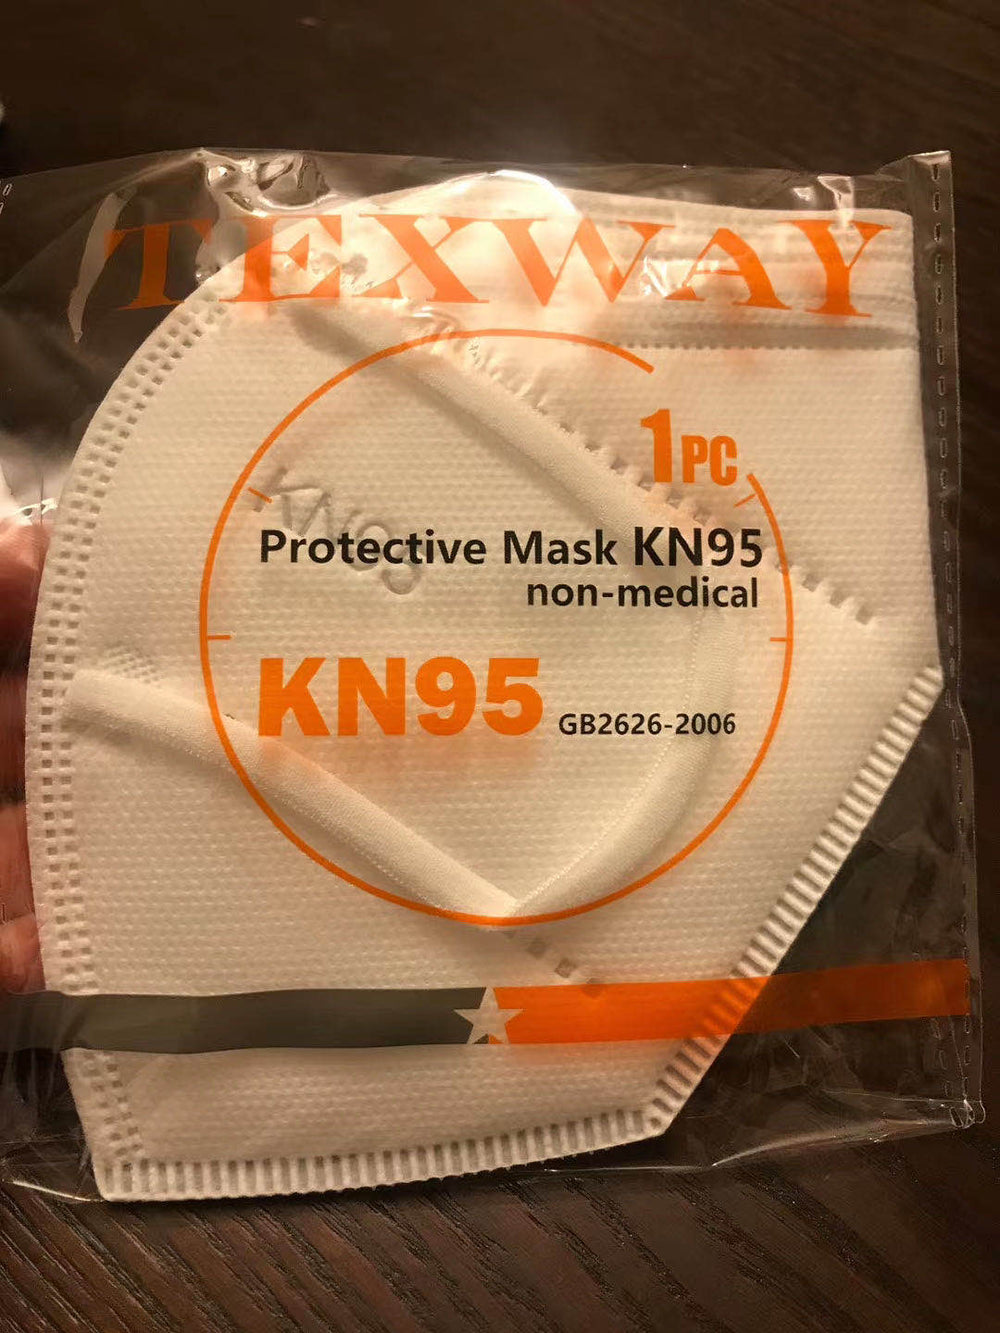 Texway protective Mask KN95 Non-medical  (50pcs) 1 box